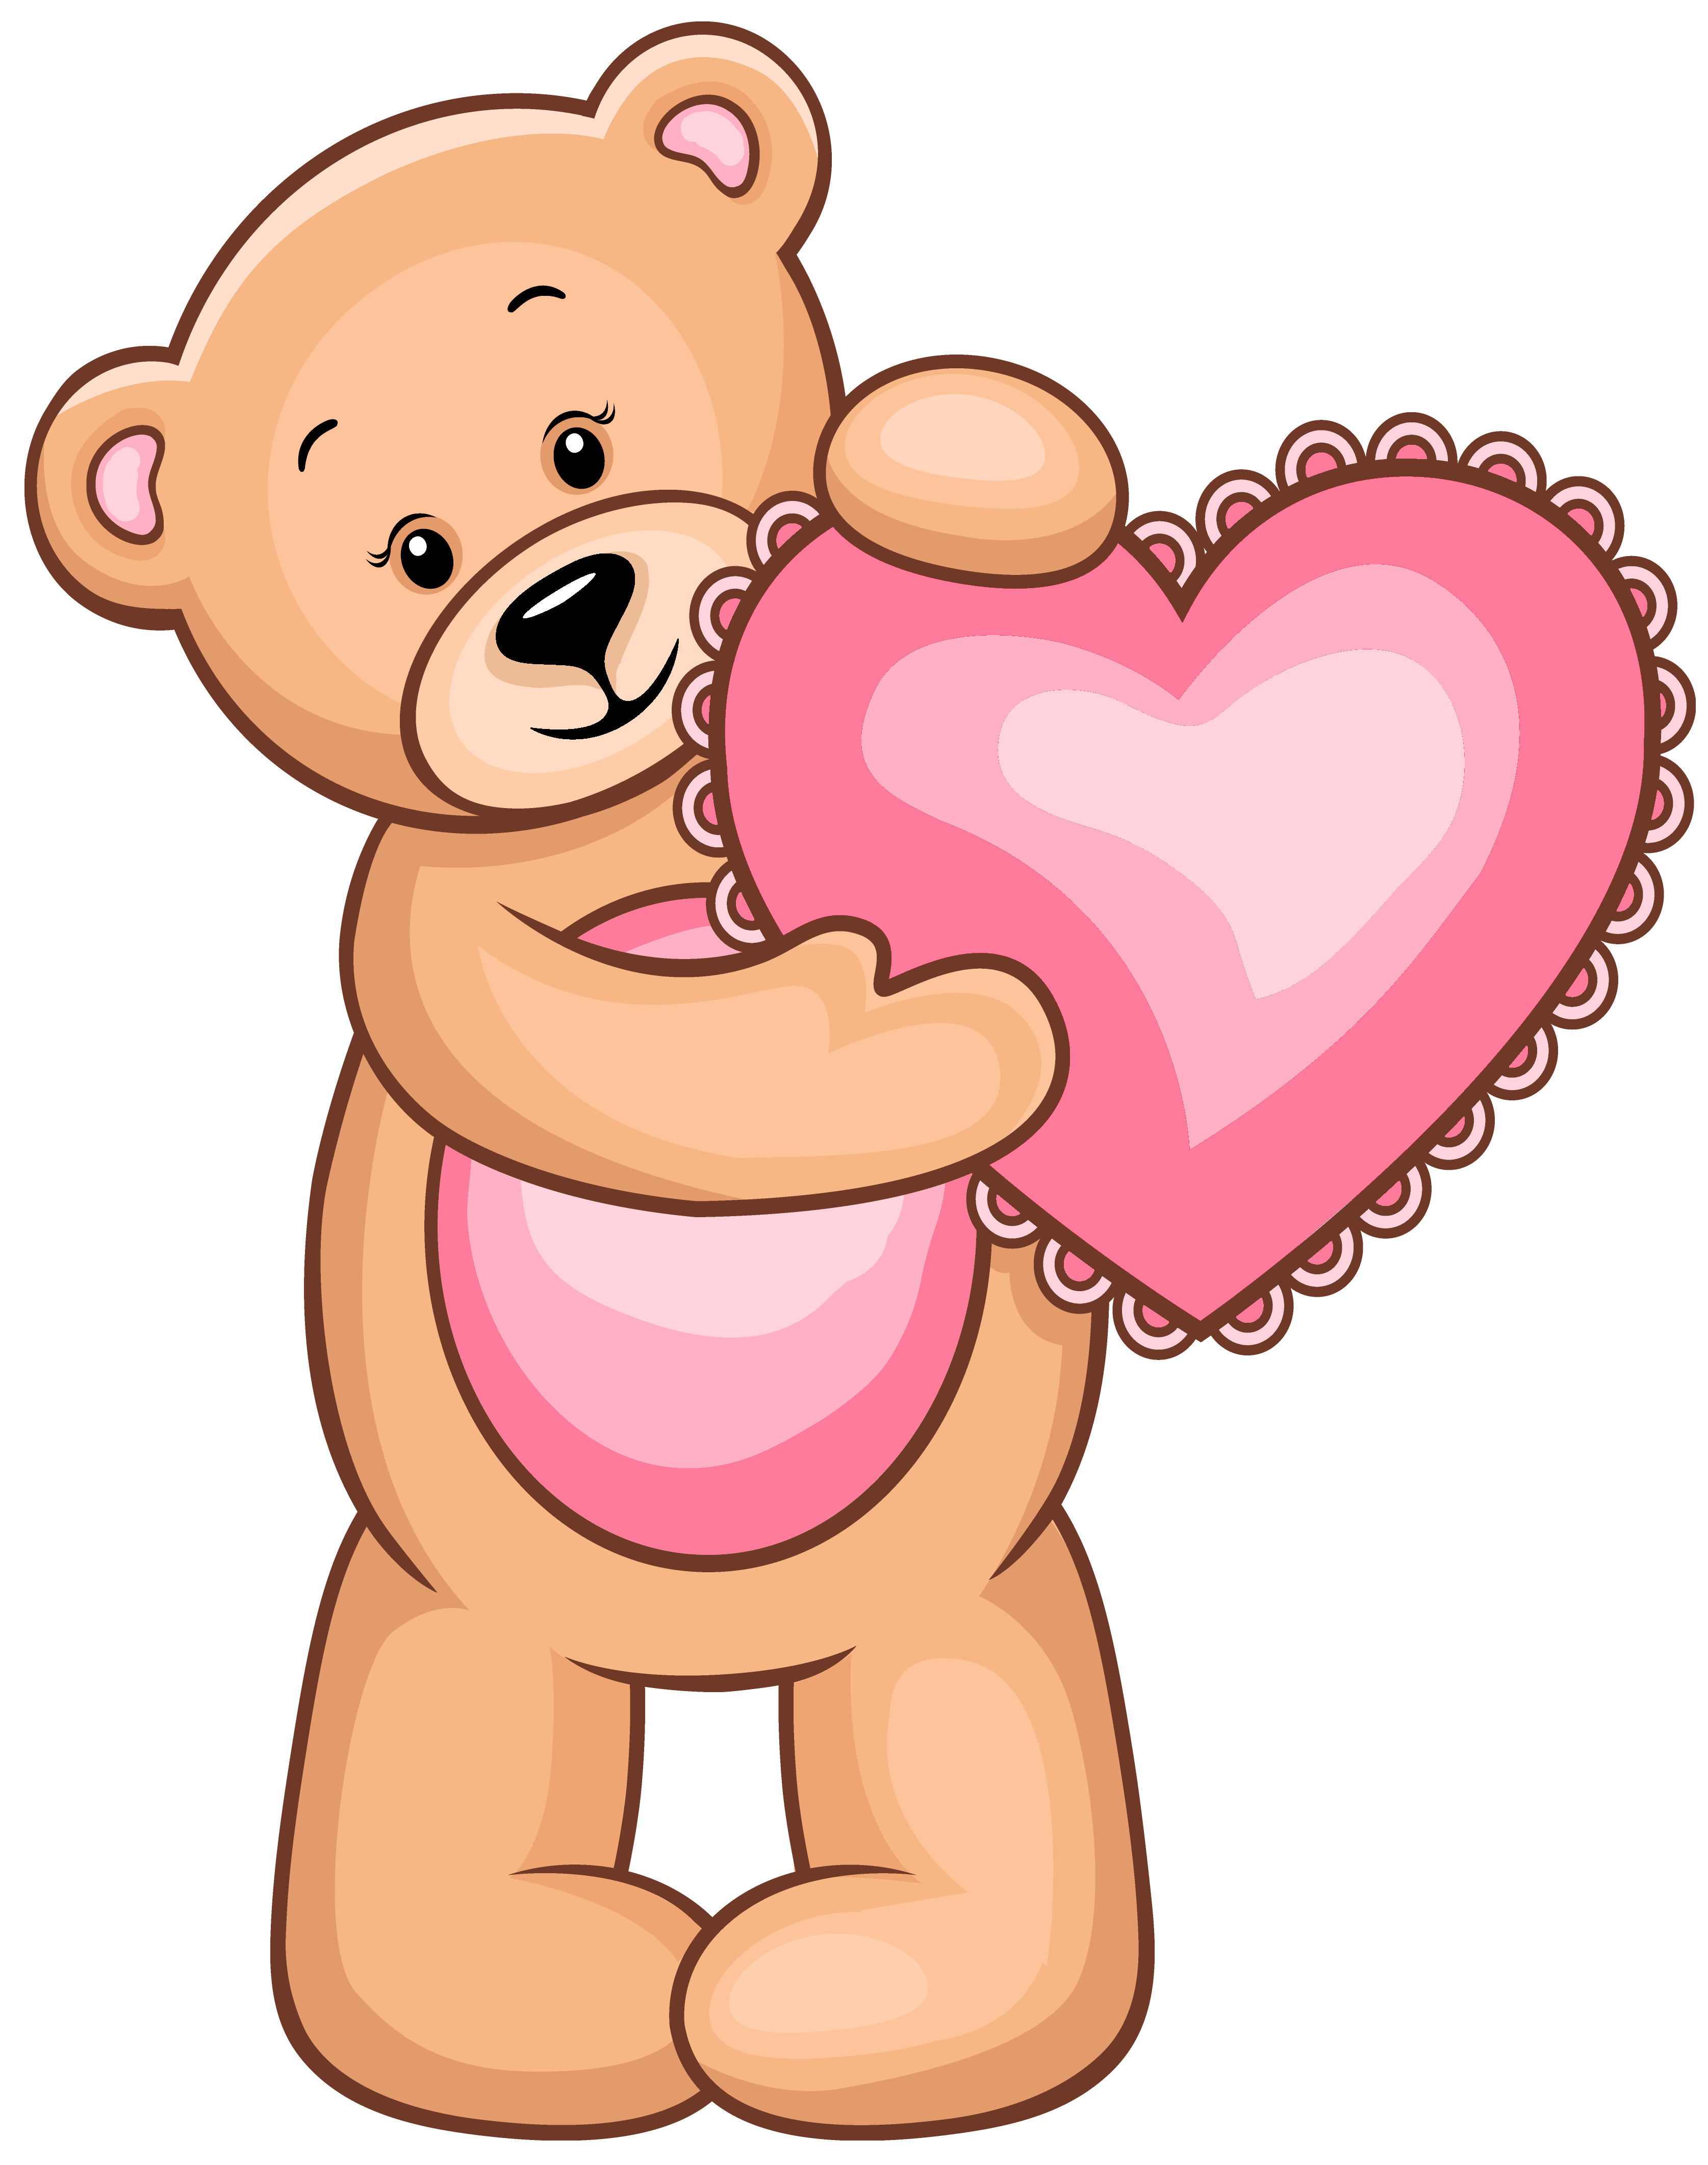 3349x4244 Transparent Teddy Bear With Pink Heart Png Clipartu200b Gallery